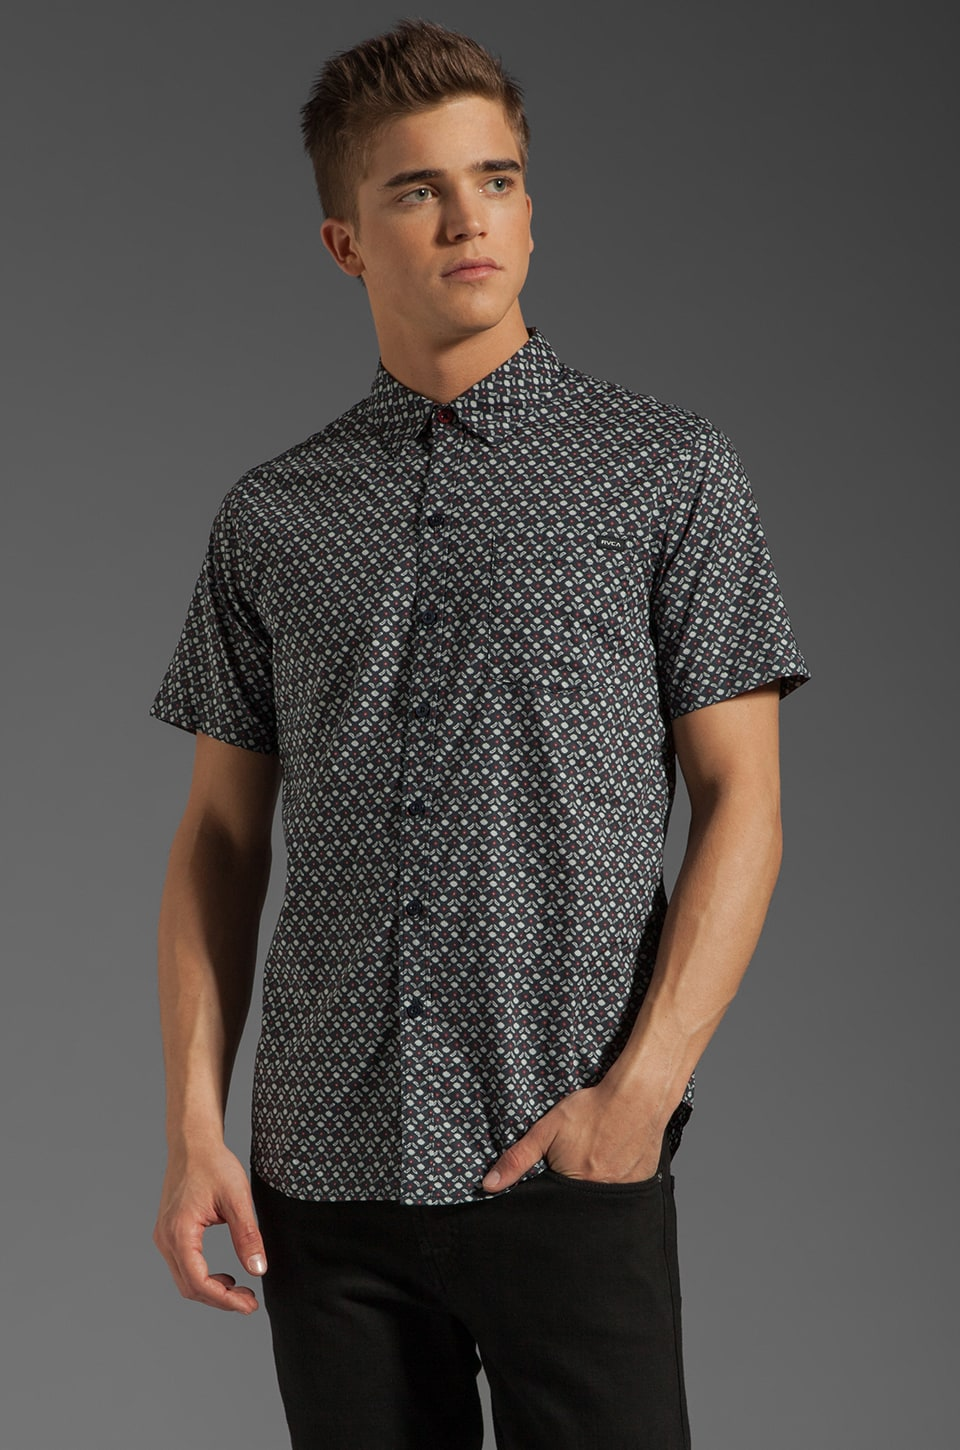 RVCA Dimension S/S Shirt in Slate